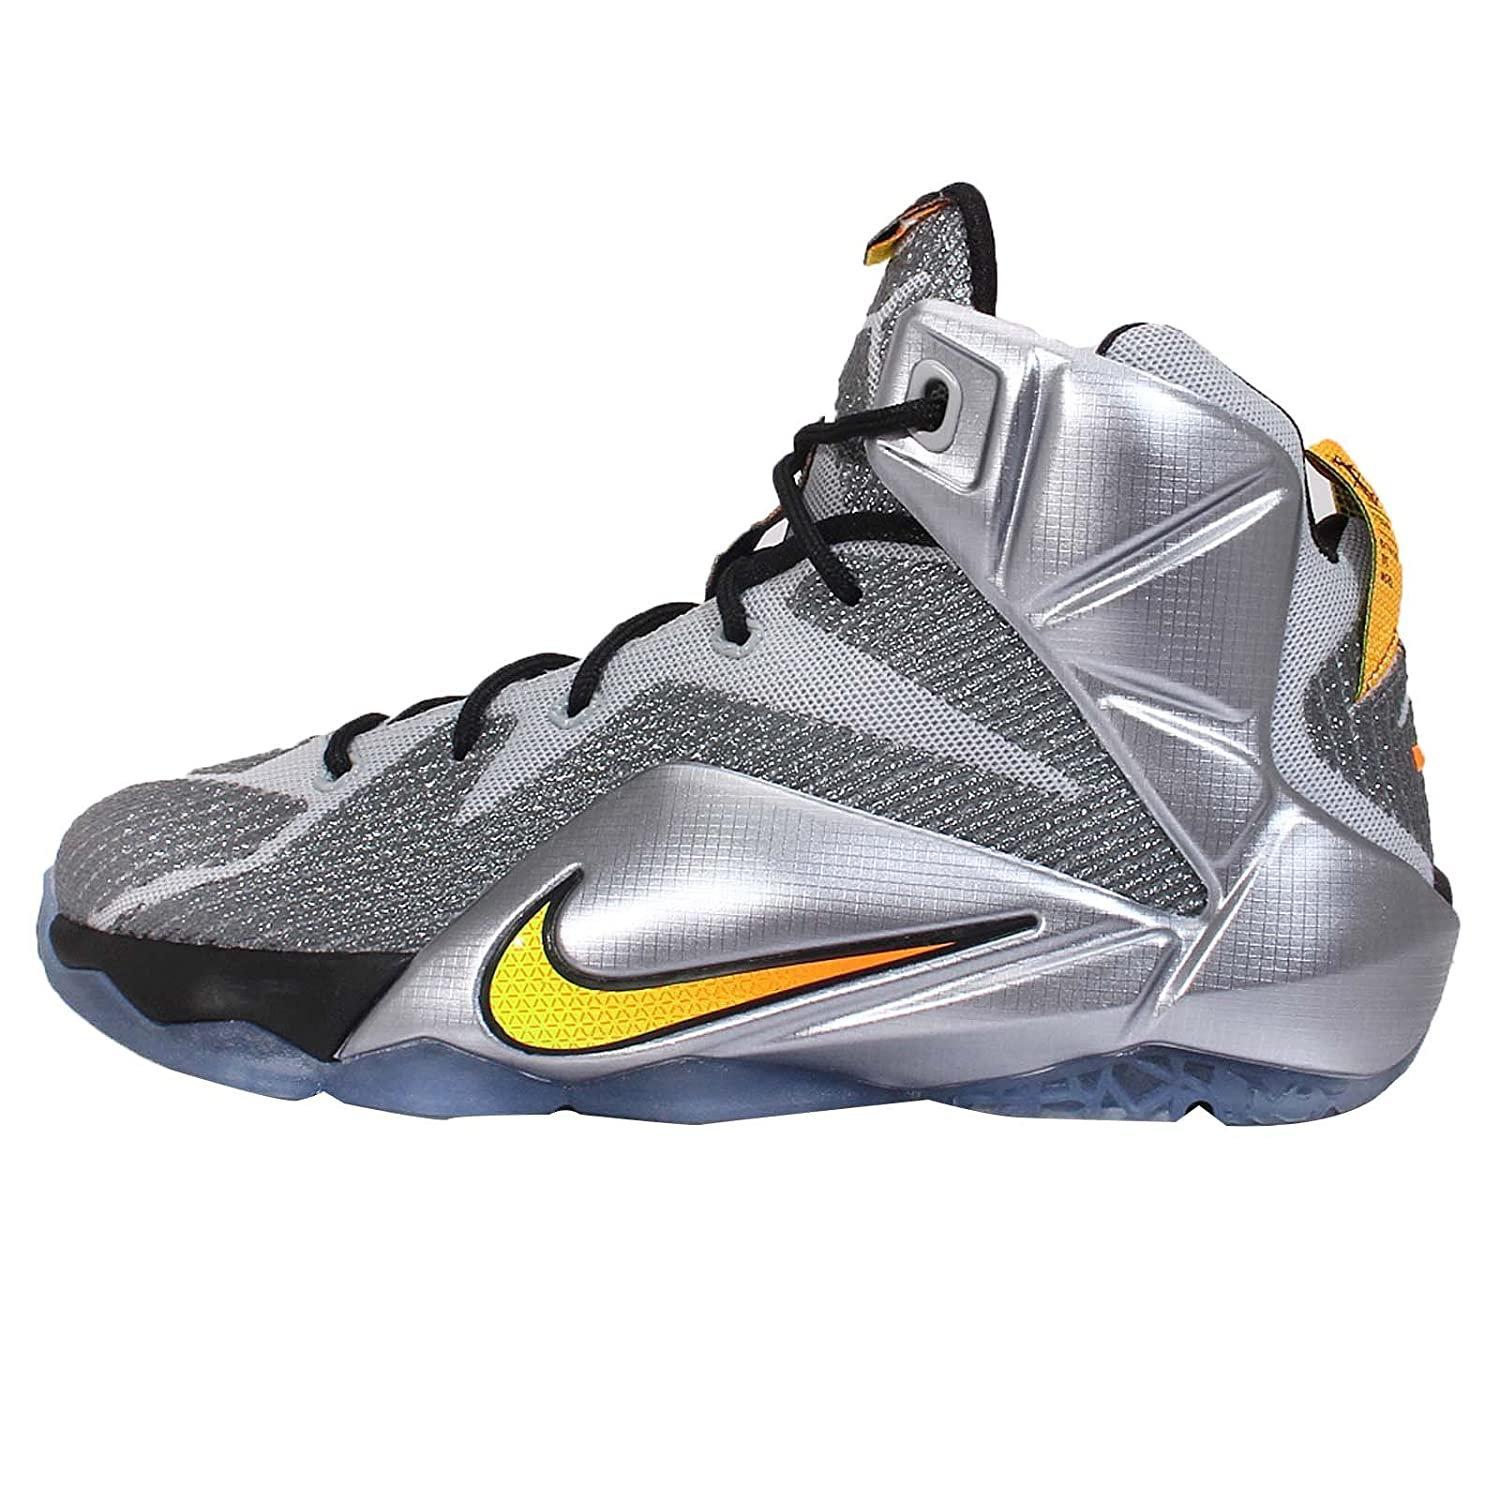 9e40ffc0514 Nike Lebron XII GS 12 Instinct Youth Boys Girls Basketball Shoes 685181-080  (6. 5Y)  Buy Online at Low Prices in India - Amazon.in